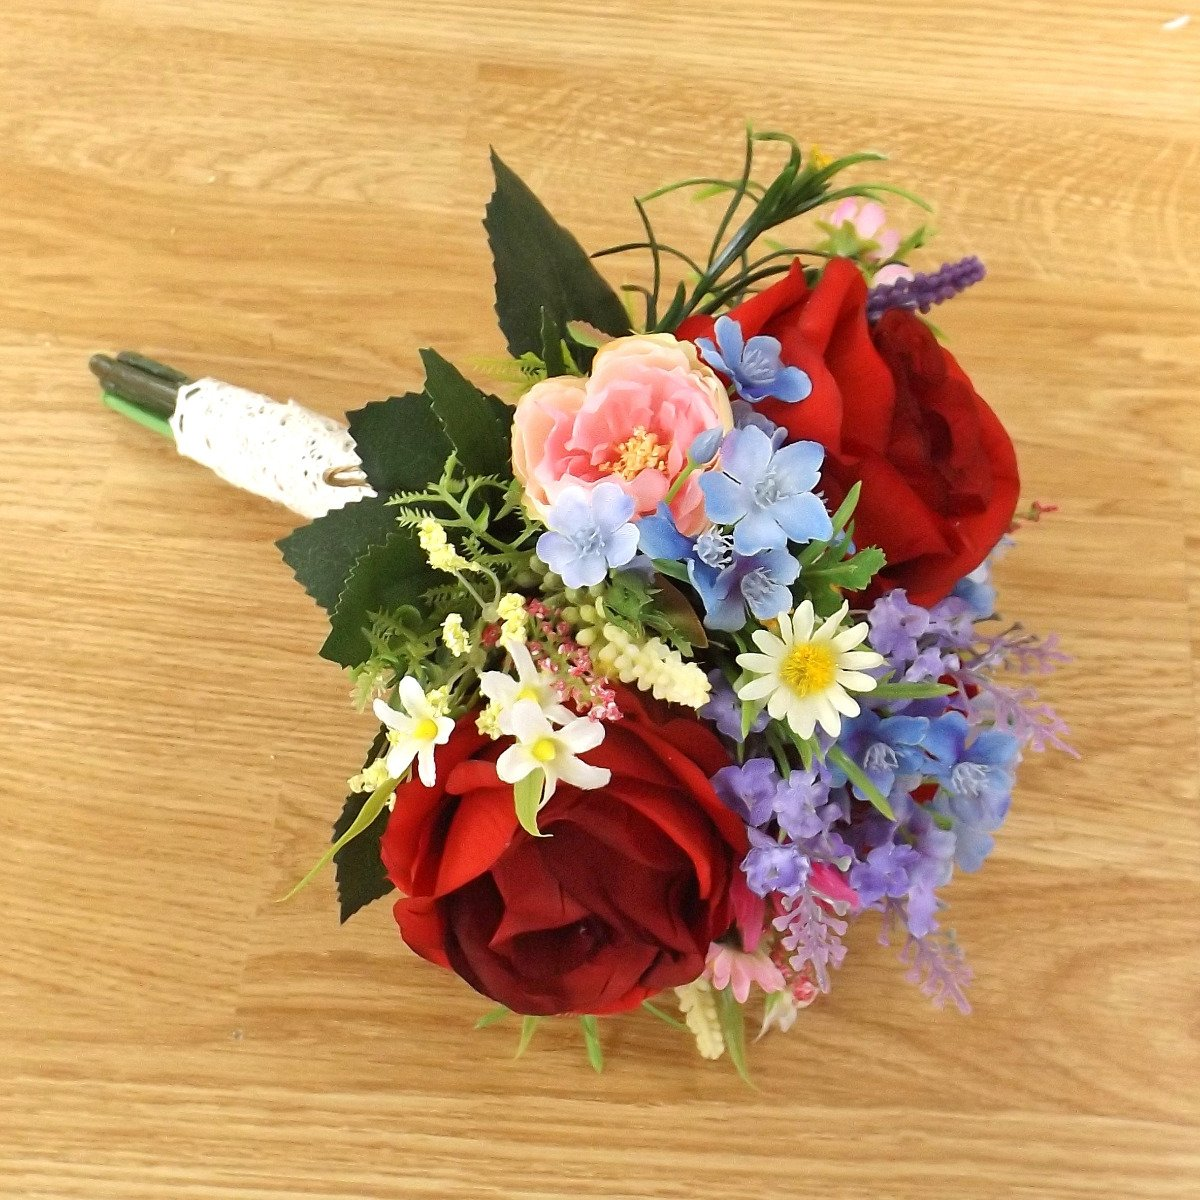 Red Silk Rose Wildflower Bridesmaid Bouquet Artificial Bouquets